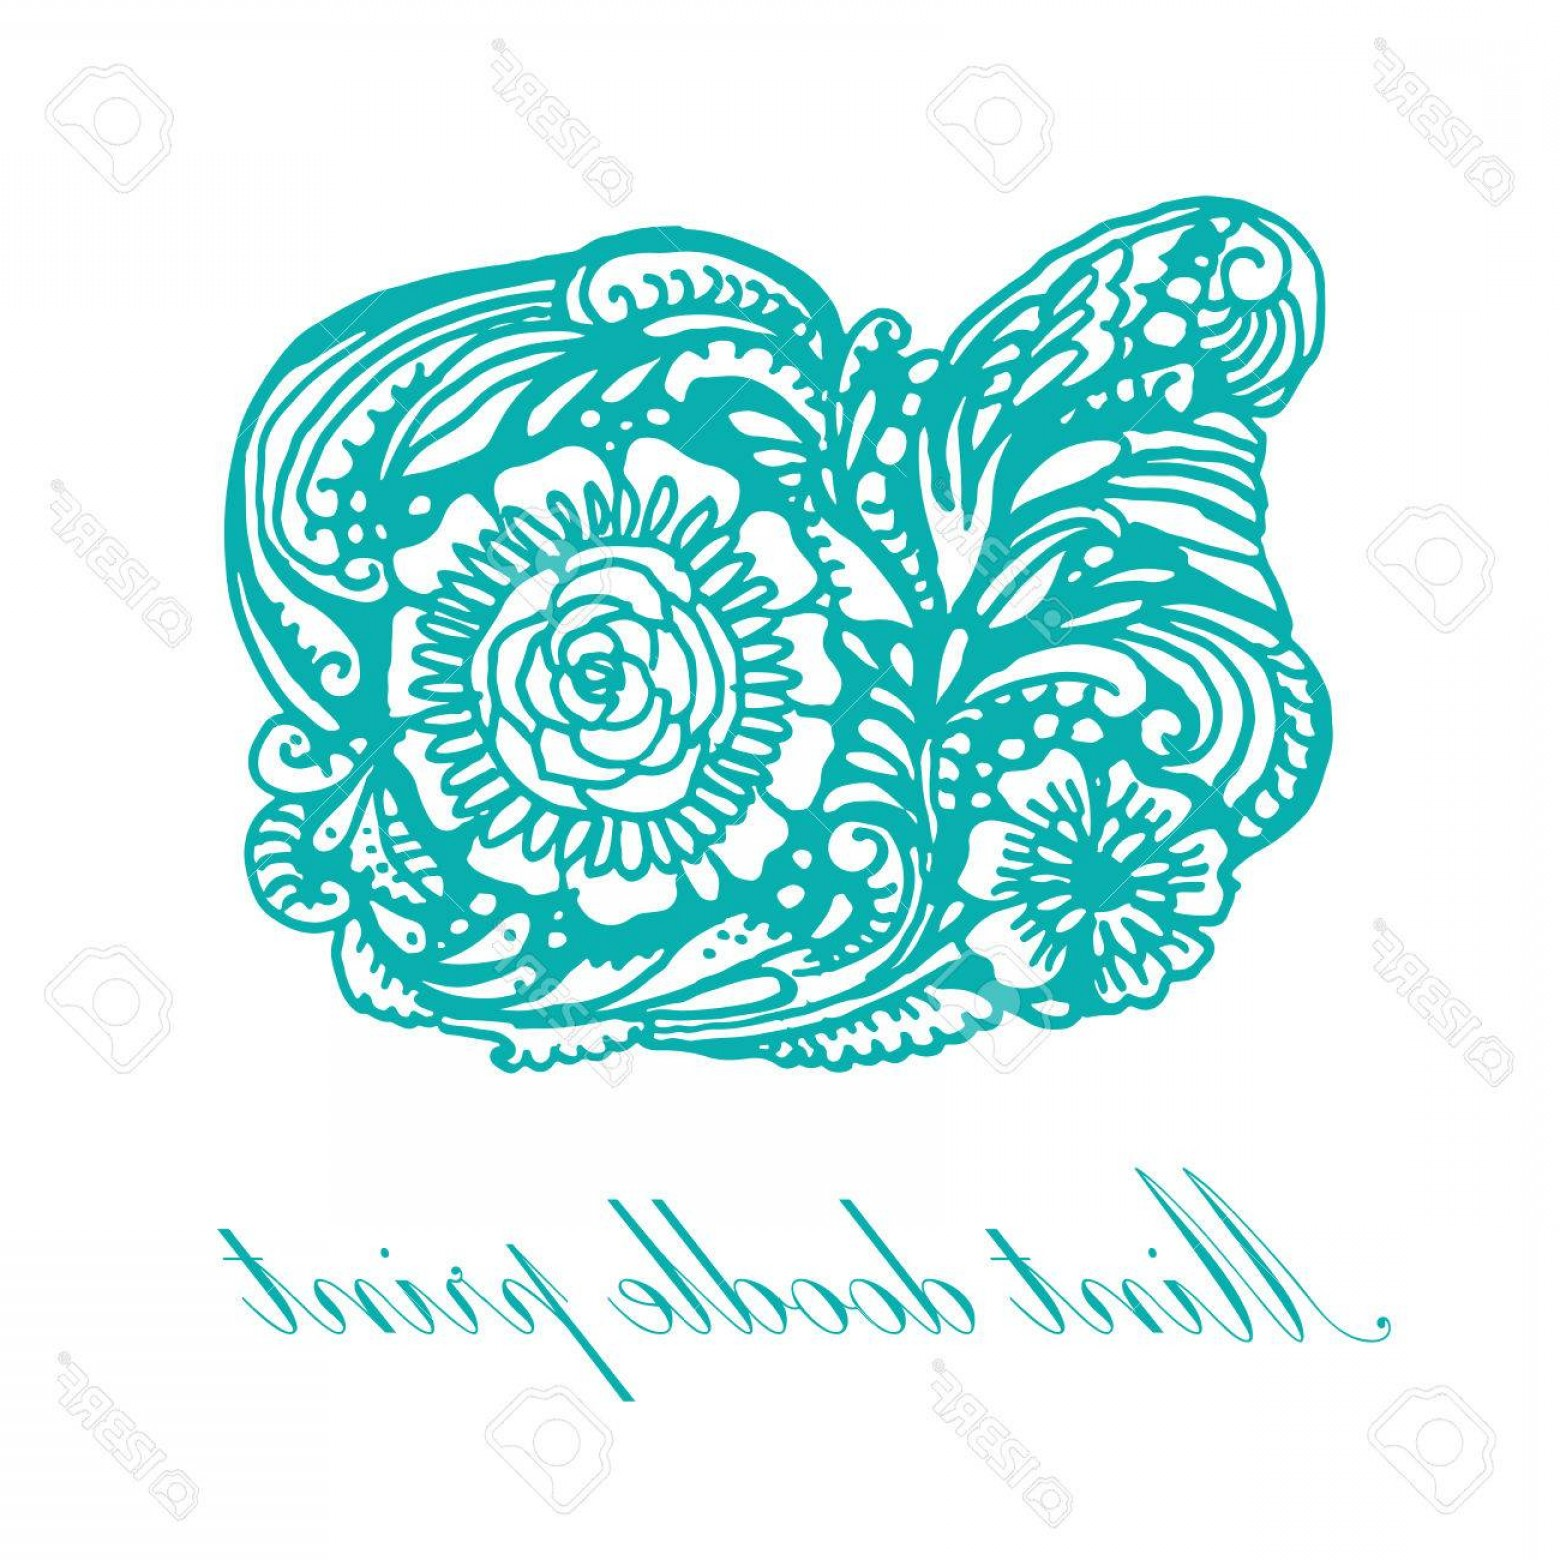 Turquoise Flower Vector: Photostock Vector Doodle Turquoise Print Patterns And Flowers Vector Illustration